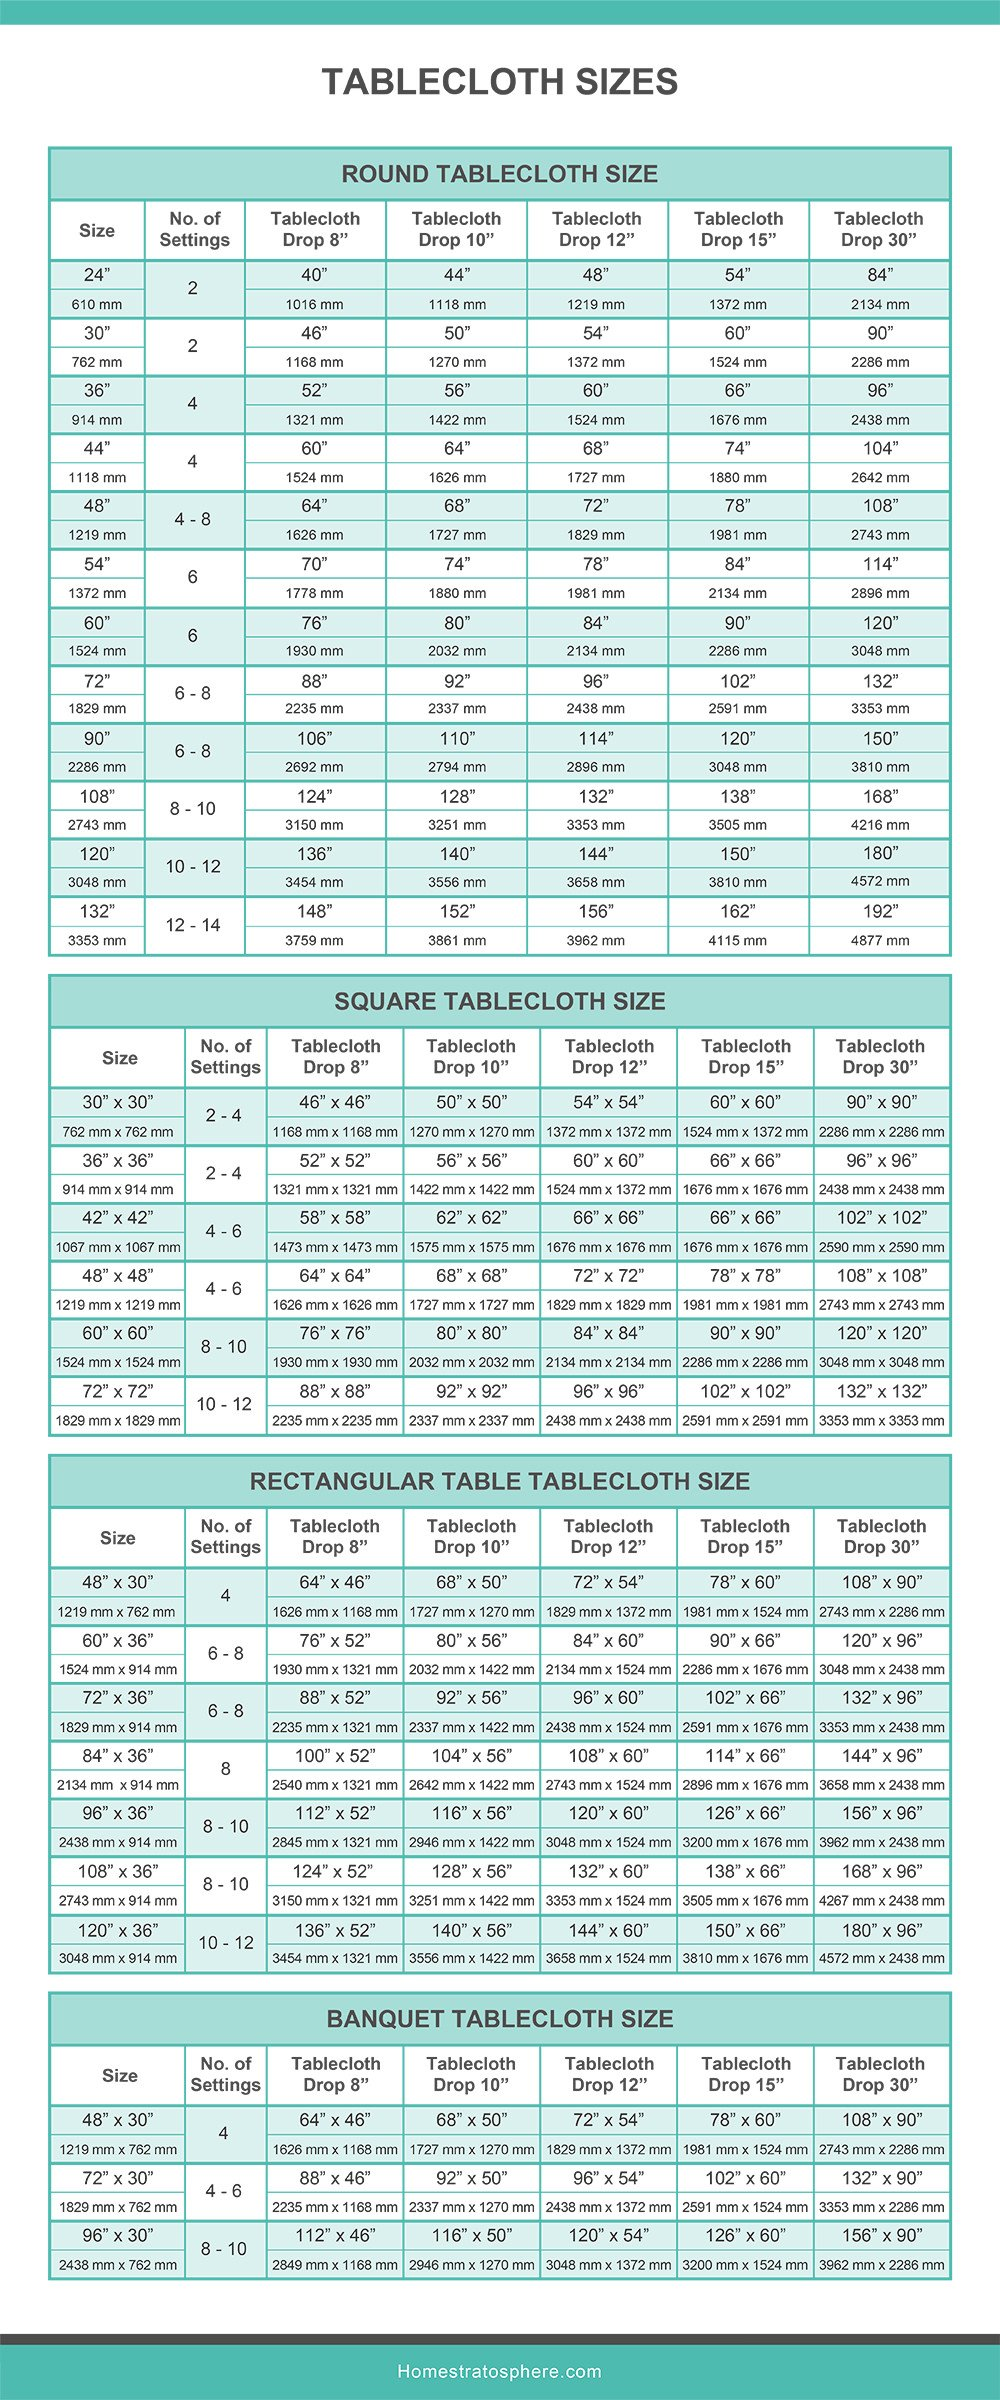 These are charts for tablecloth sizes of round, square, rectangular and banquet tables.